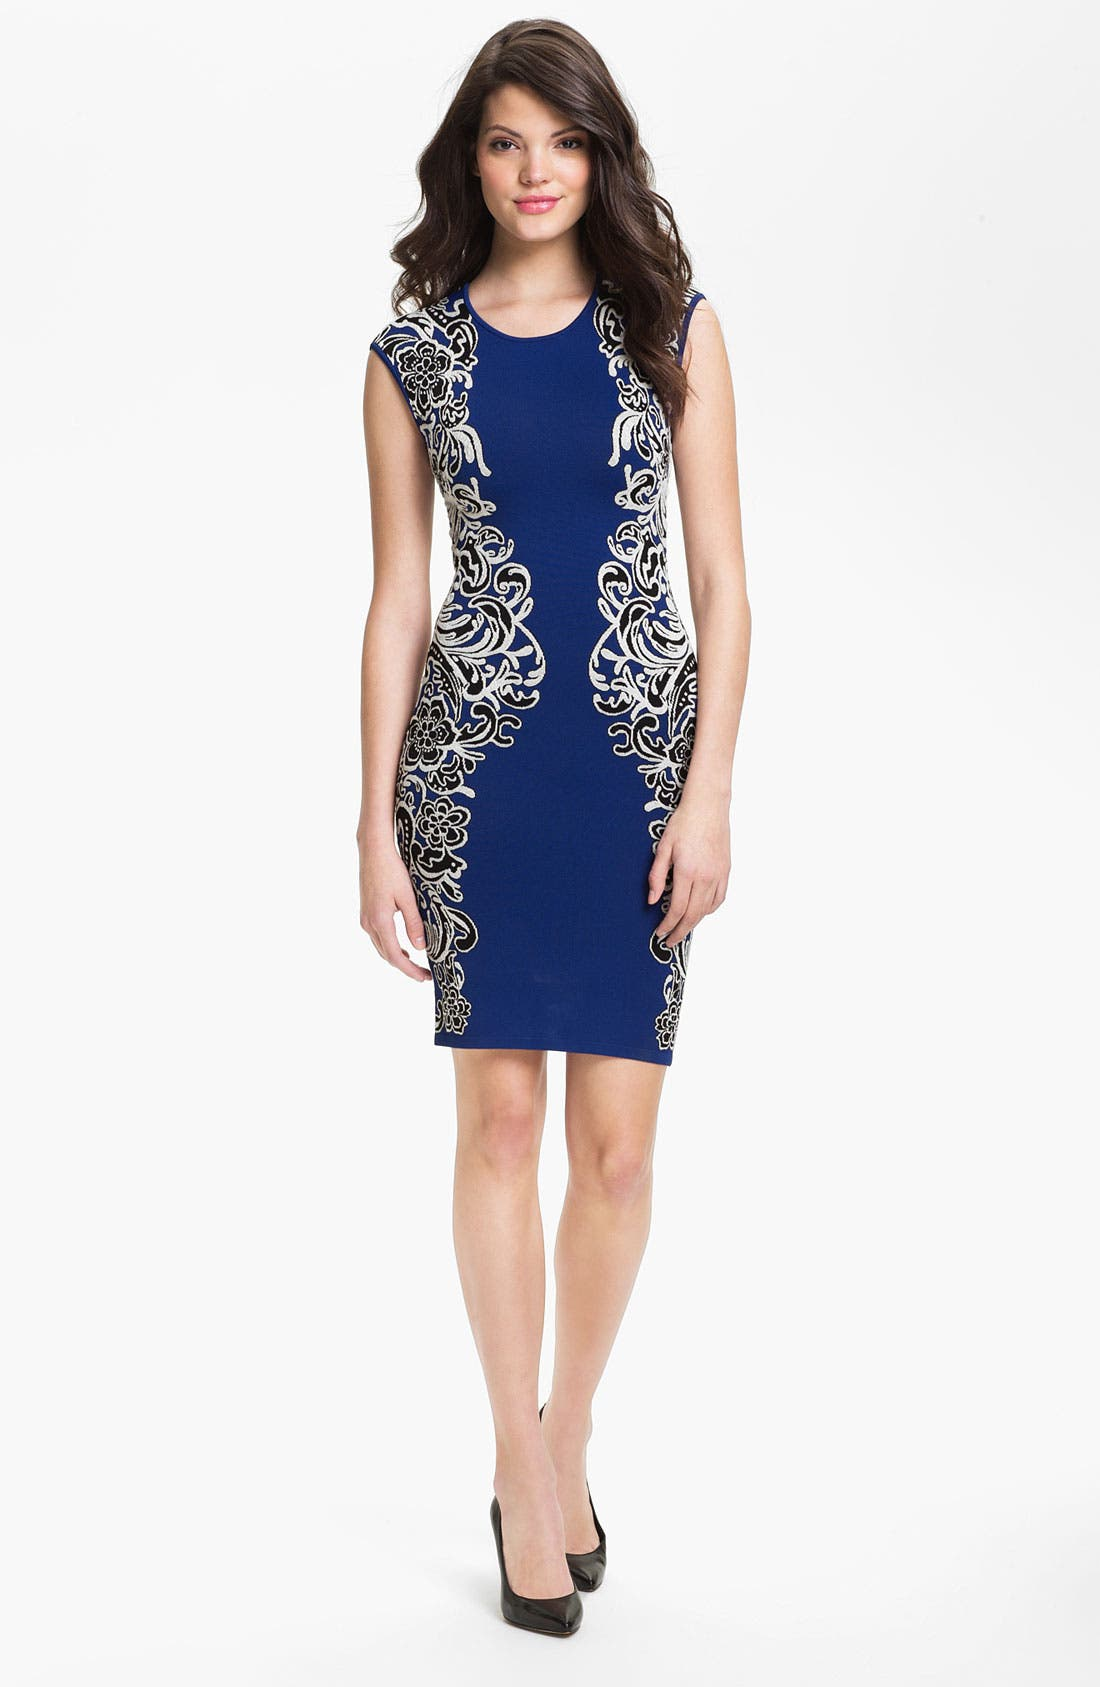 Alternate Image 1 Selected - BCBGMAXAZRIA 'Tapestry' Sheath Dress